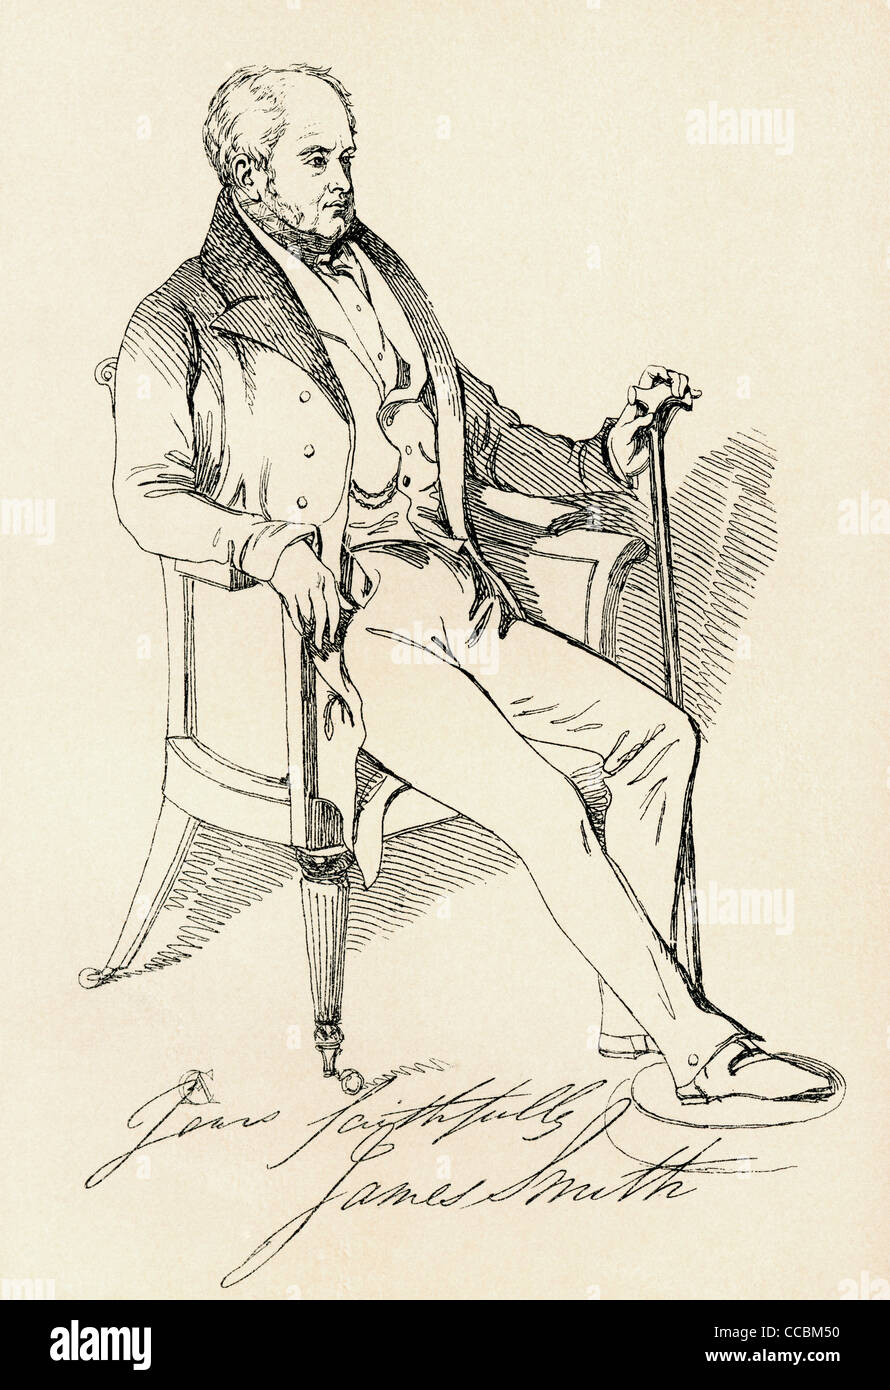 James Smith, 1775 - 1839. English author. From The Maclise Portrait Gallery, published 1898. - Stock Image